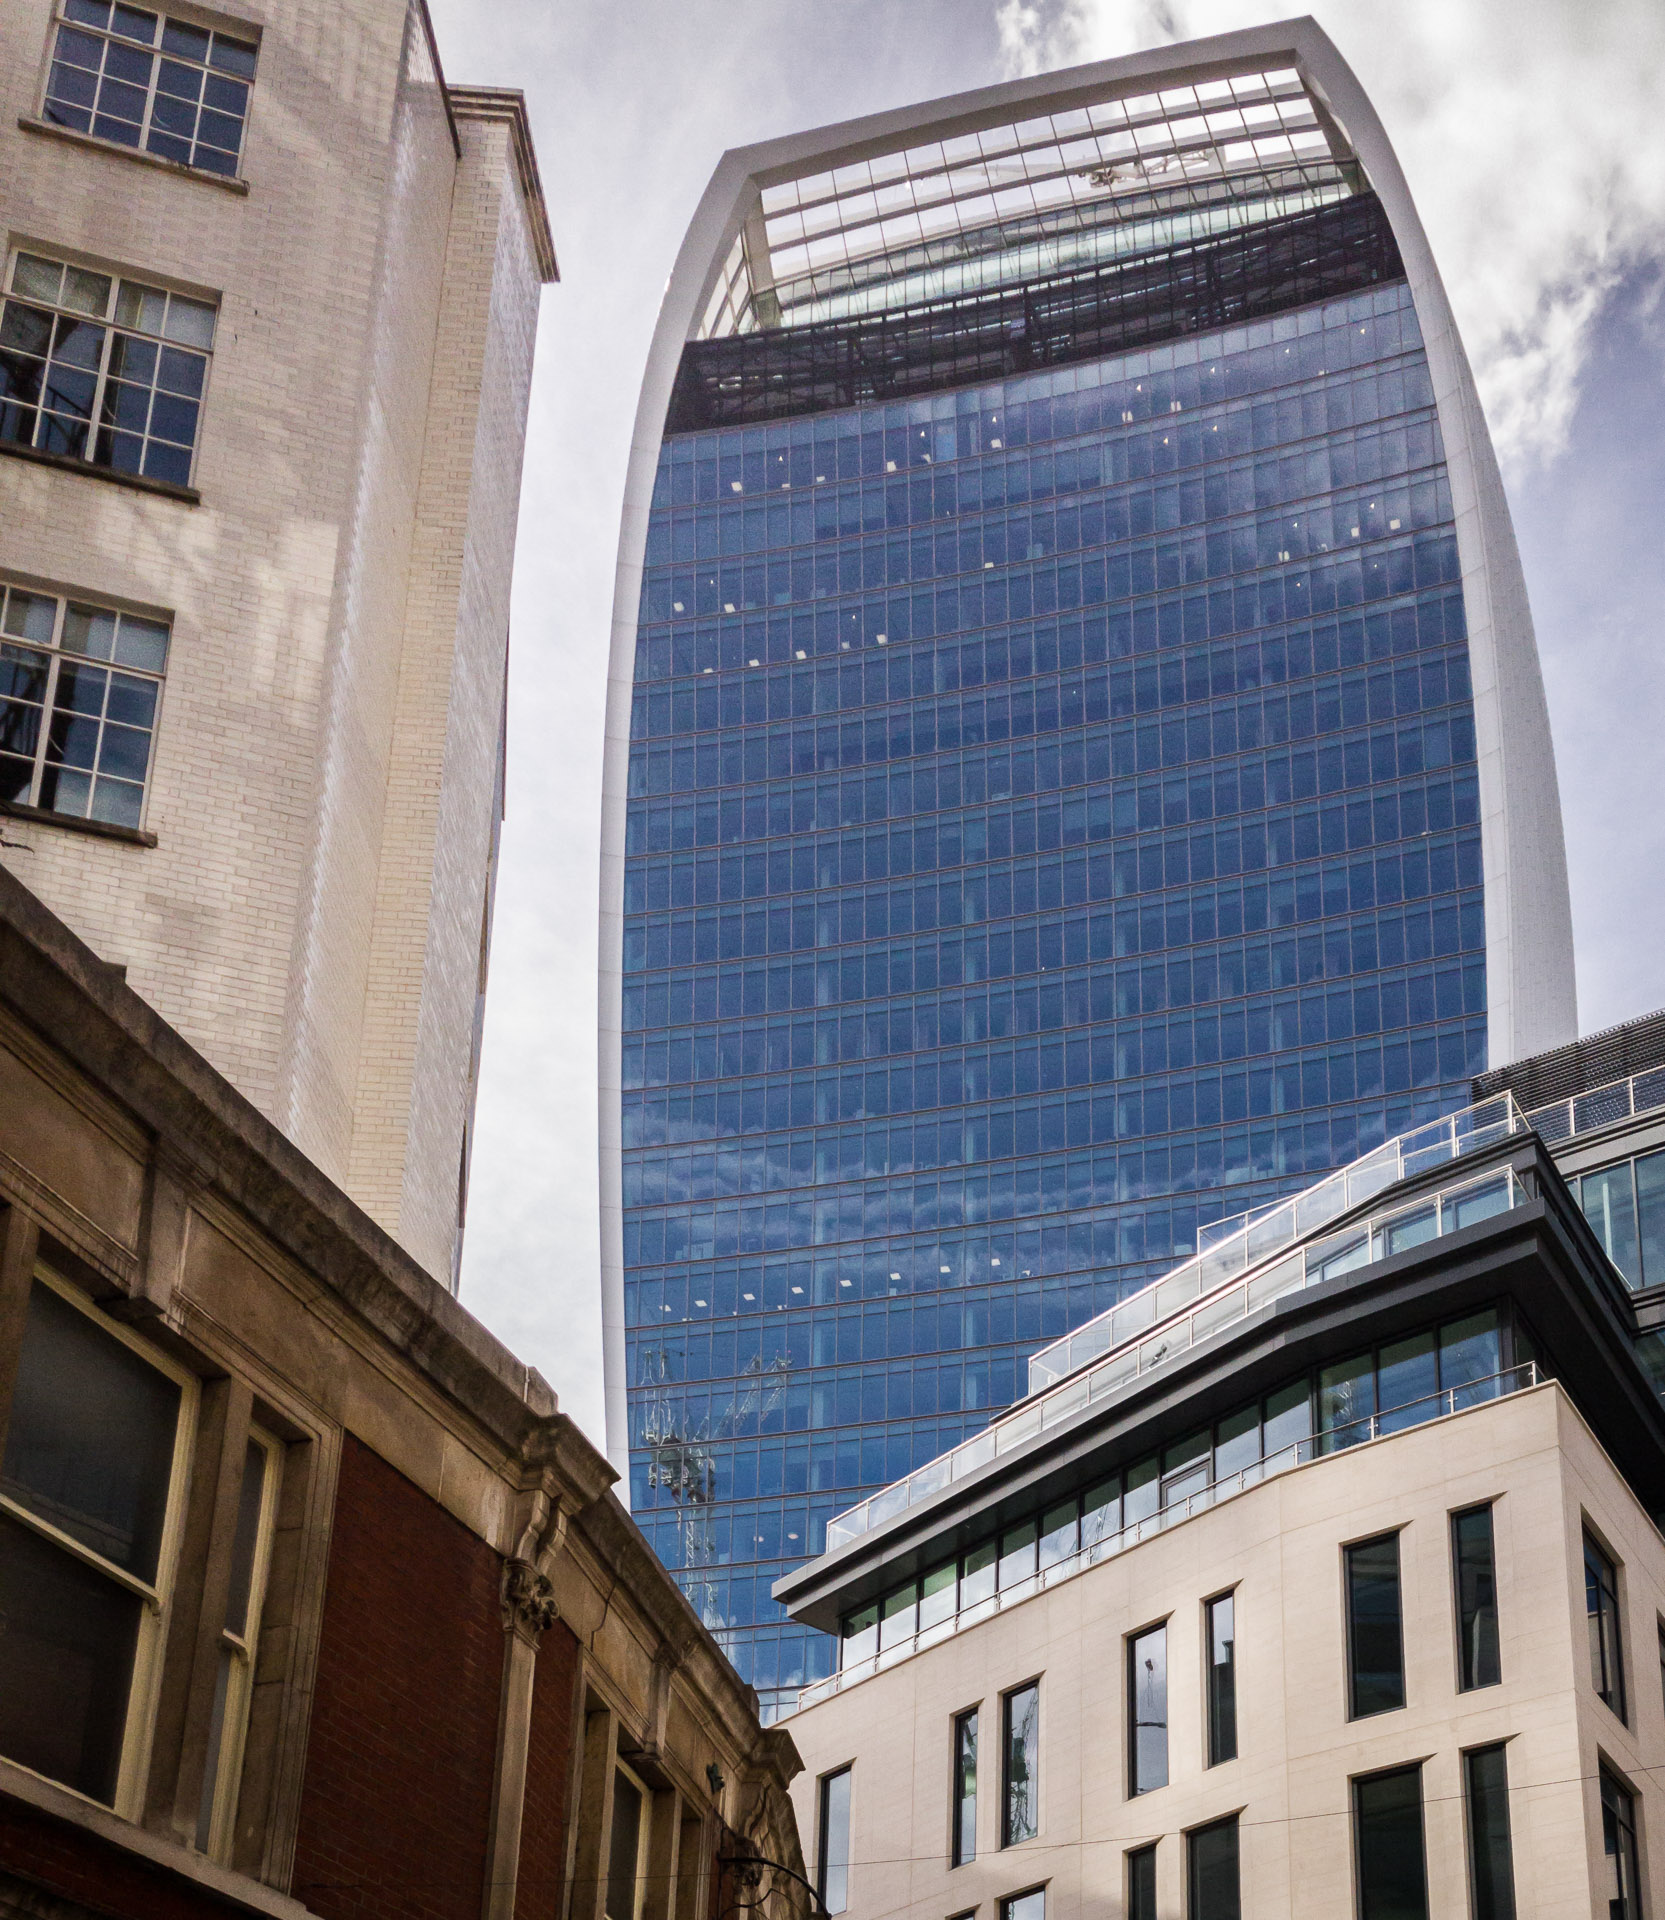 20 Fenchurch Street